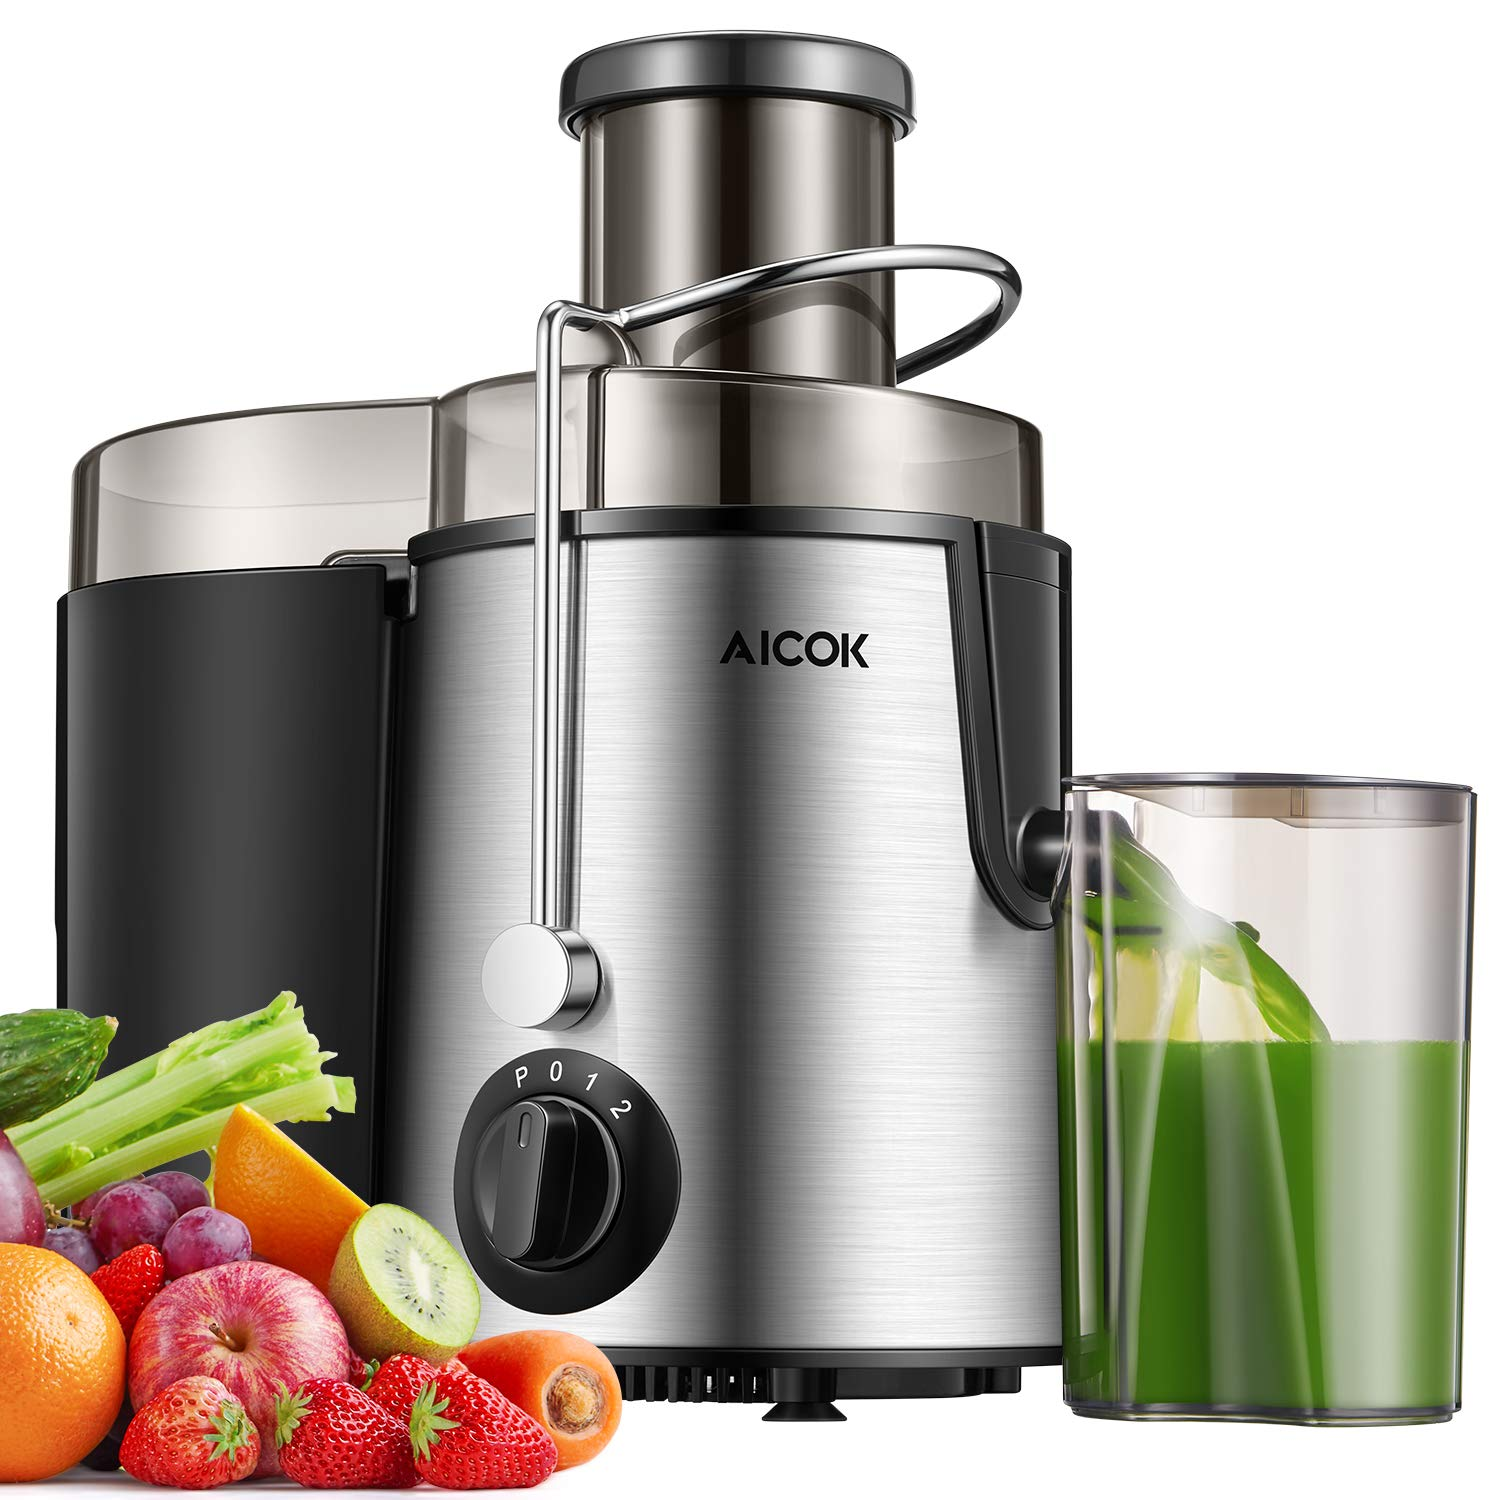 AICOK Juicer Centrifugal Juicer Wide Mouth Three Speed Juicer Machine, BPA Free Stainless Steel Juice Extractor for Fruits and Vegetable, Non-Slip Feet